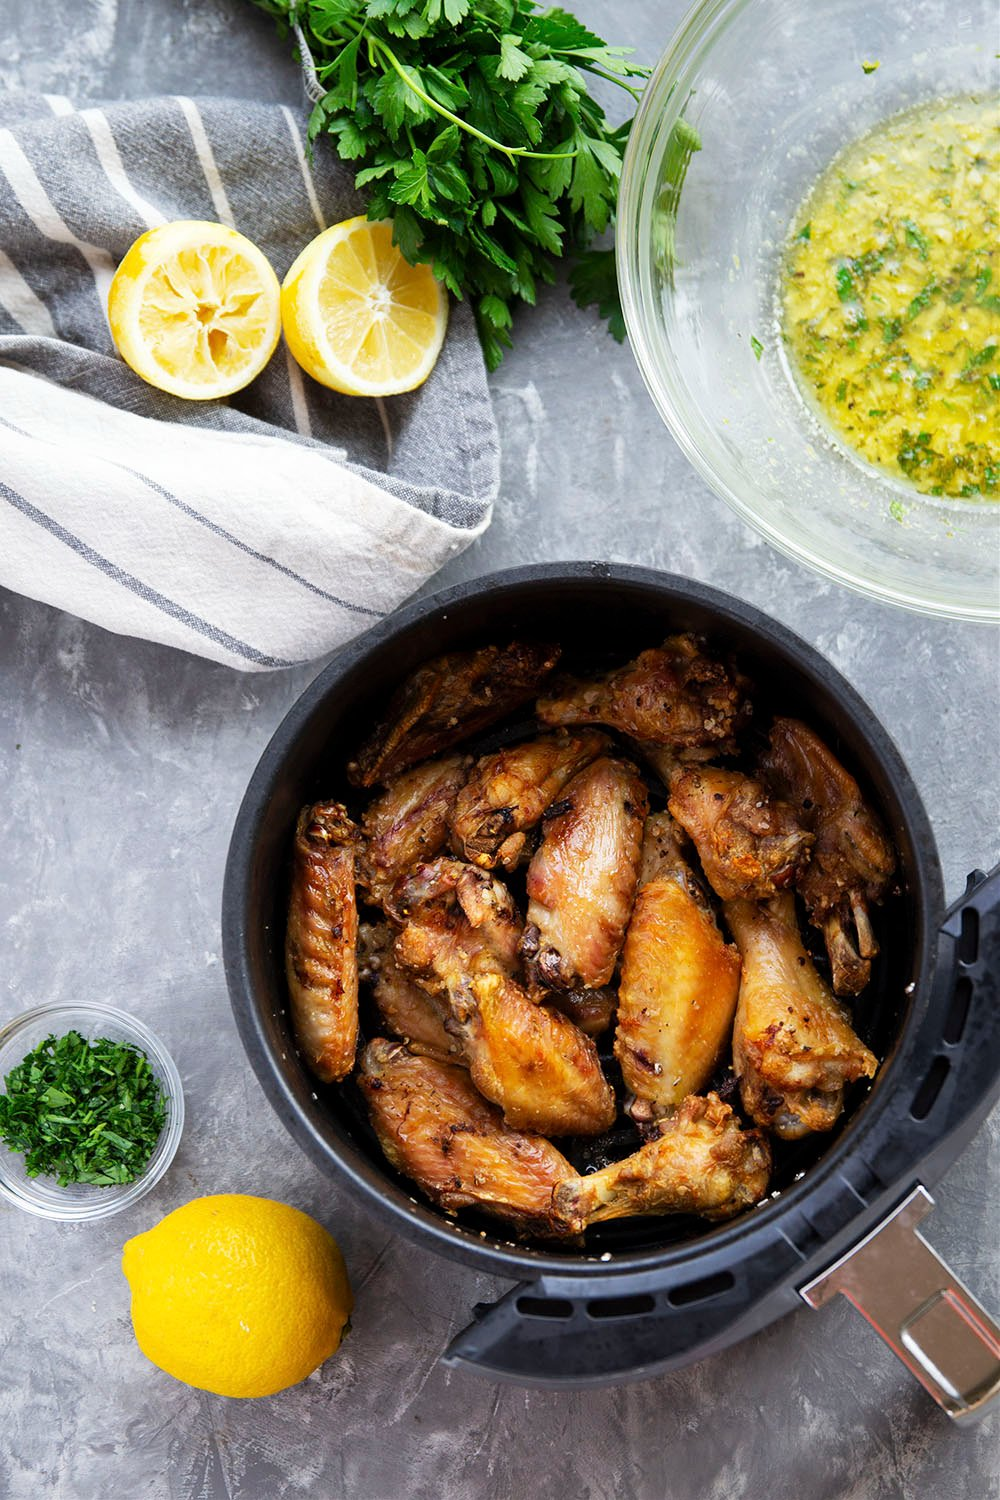 Made entirely in the air fryer and impossibly crispy, these lemon garlic chicken wings are a must-have addition to any appetizer table!